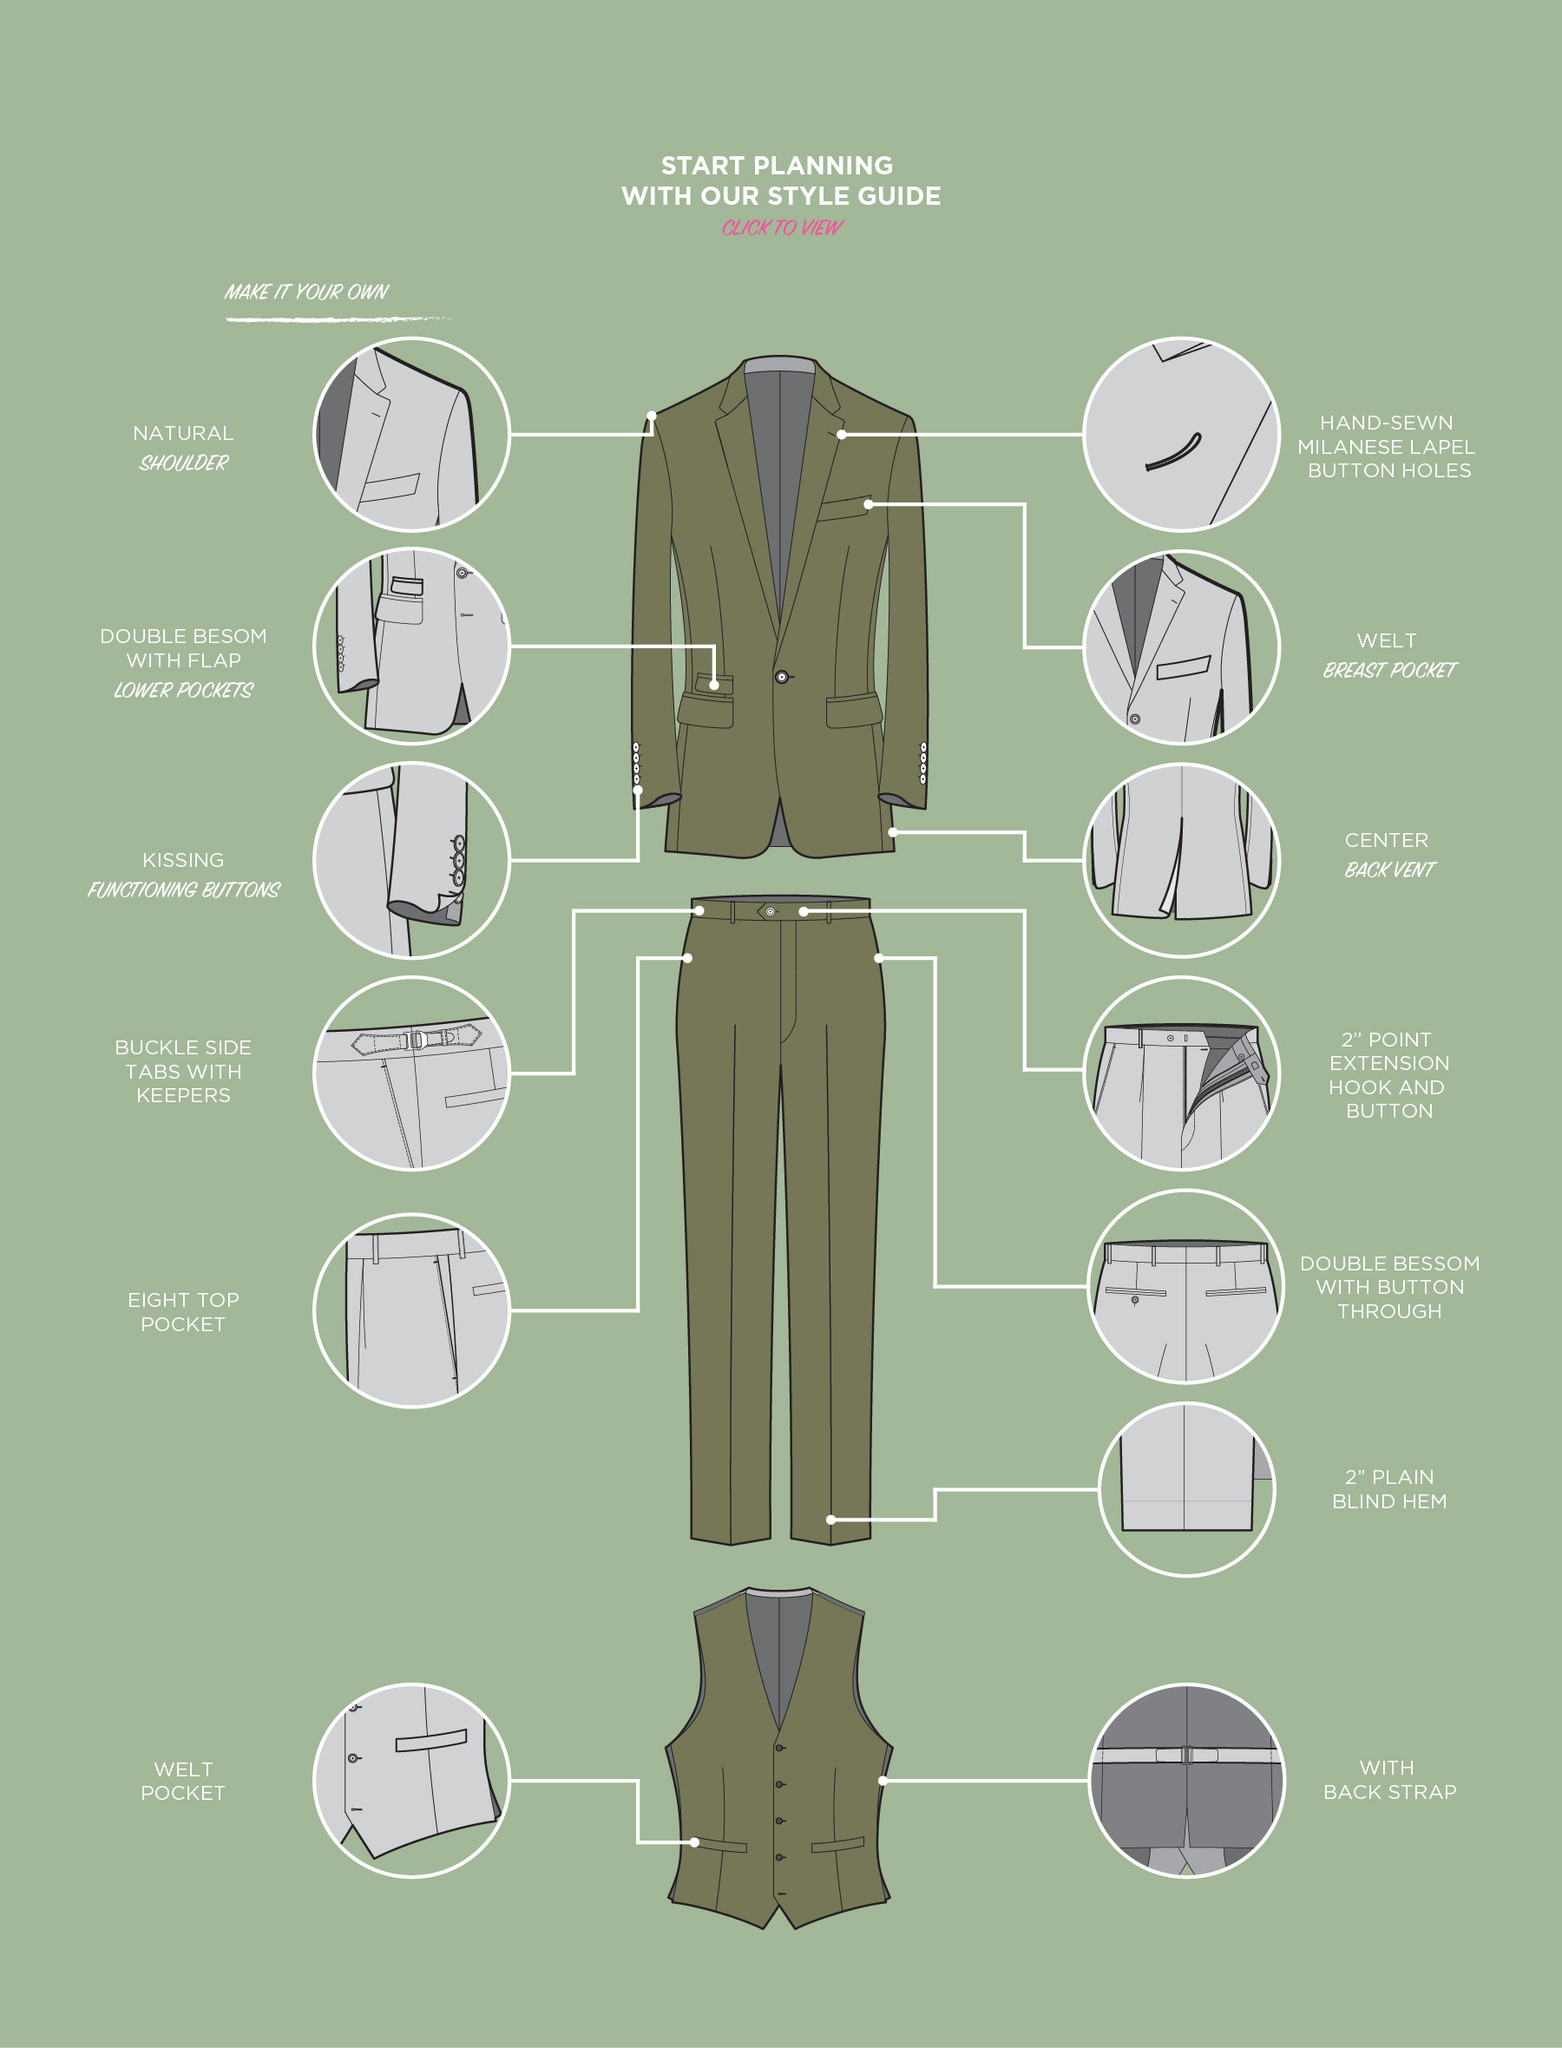 Custom Suit Style Guide